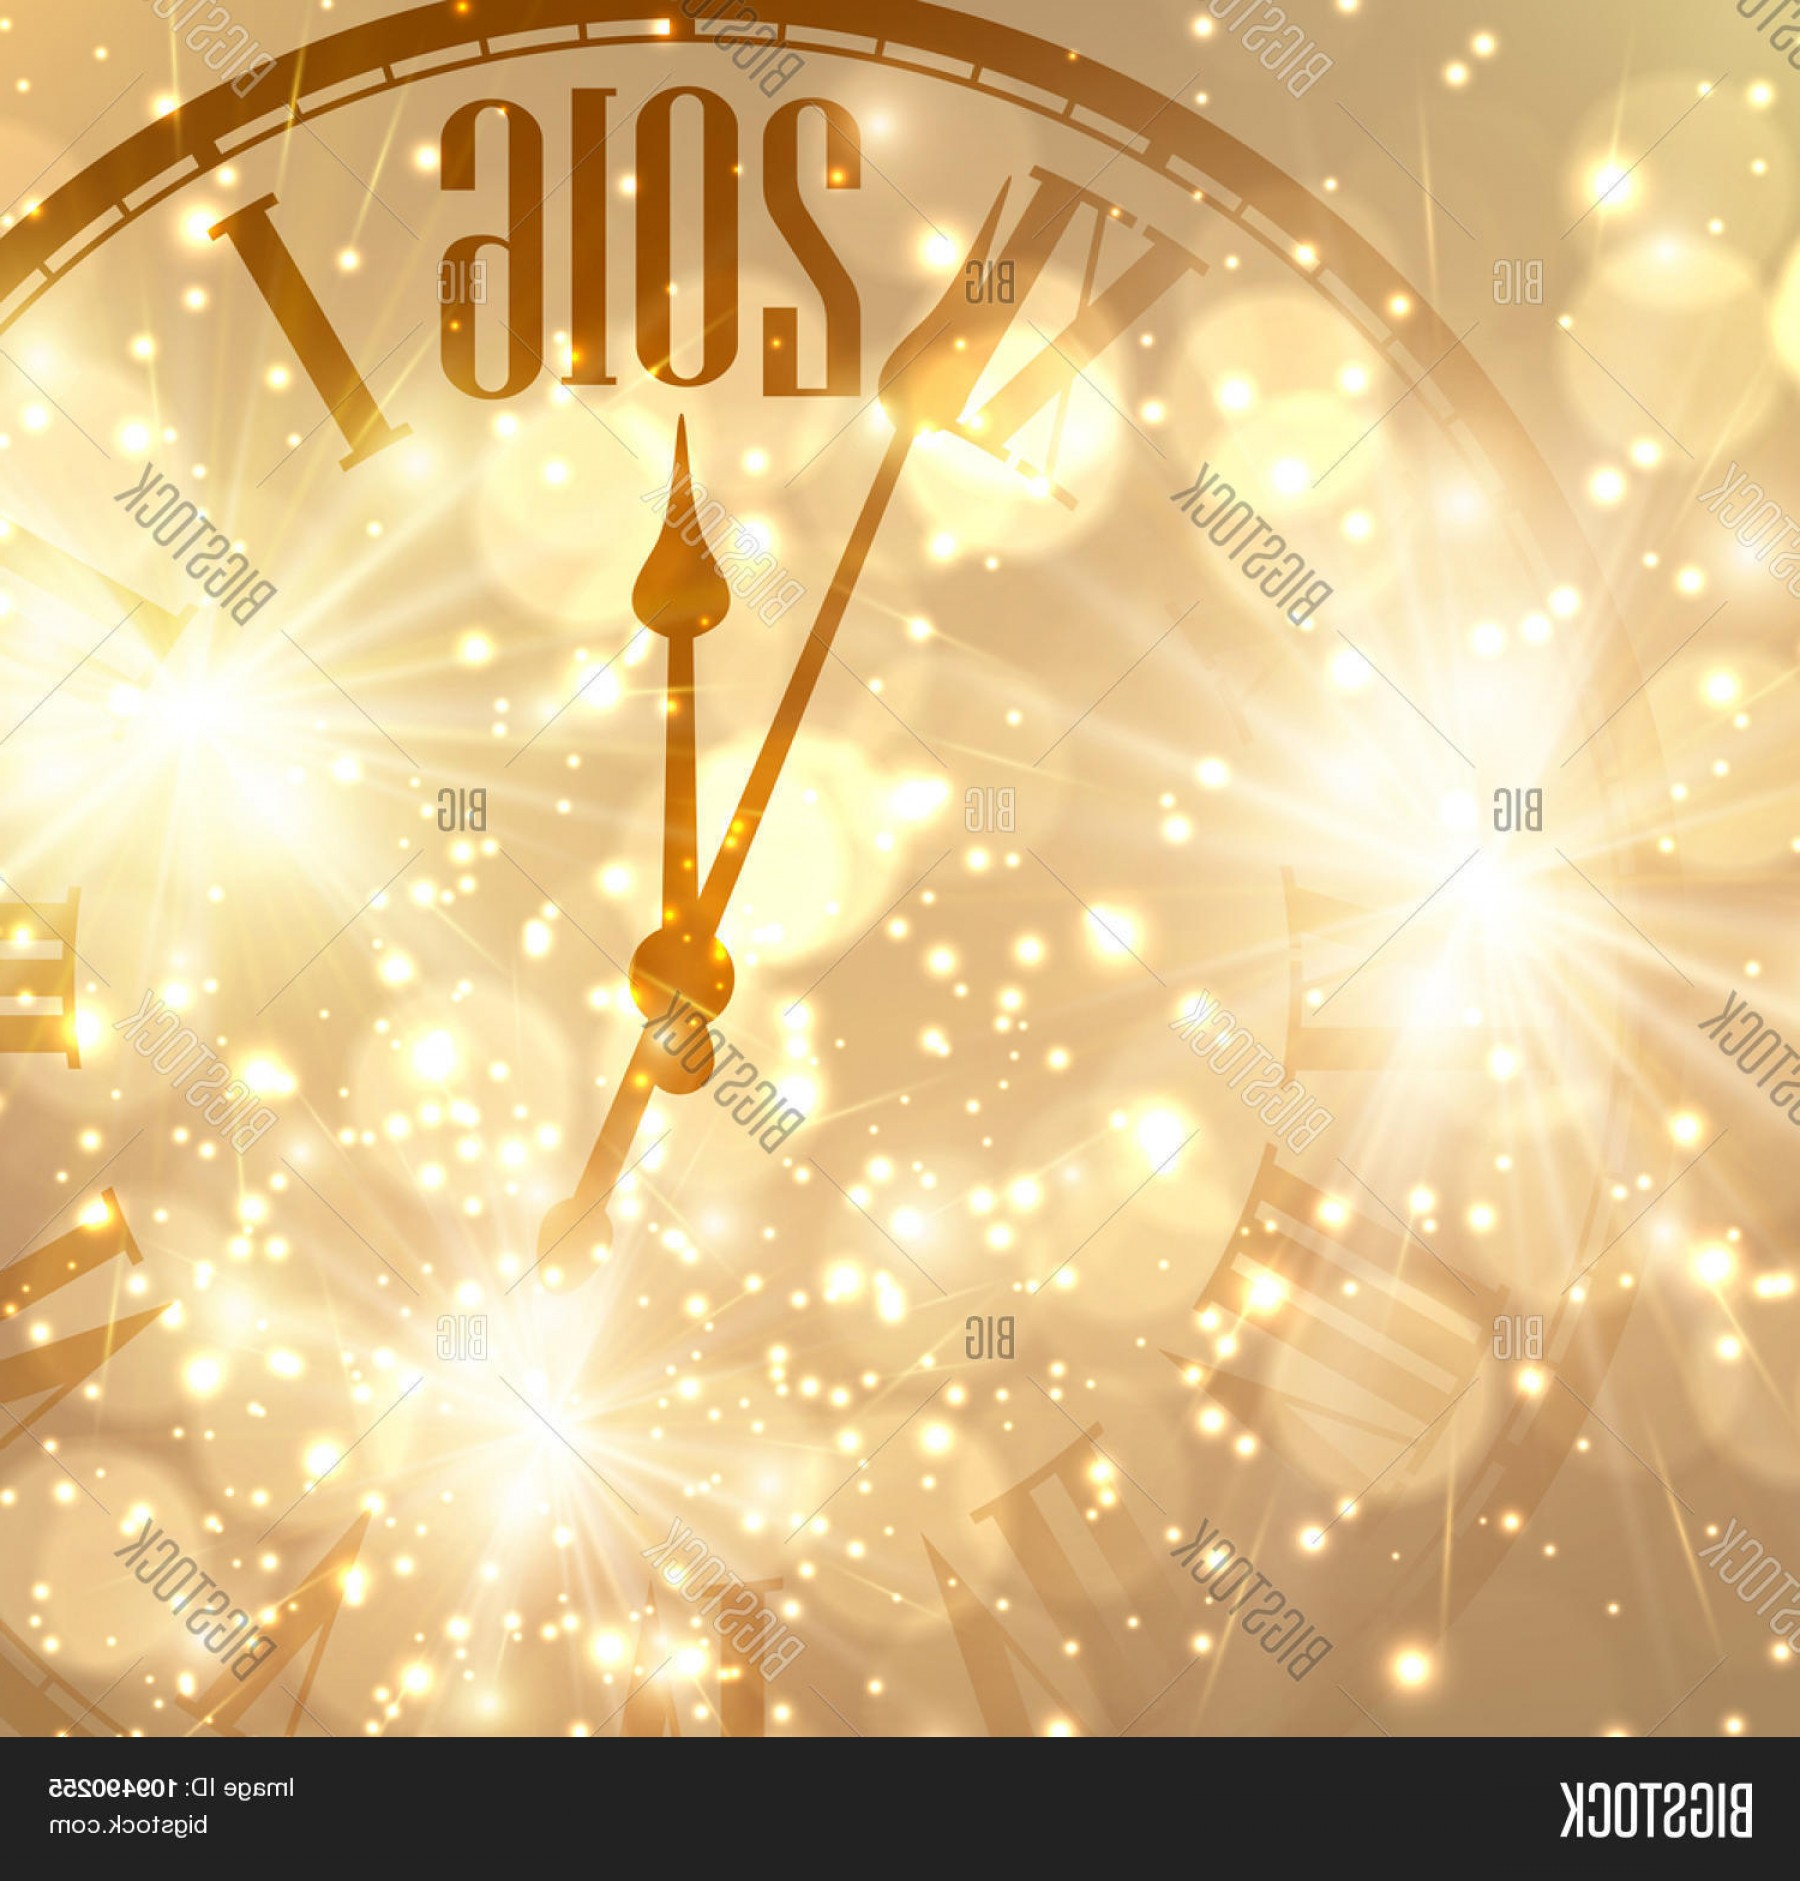 Vector New Year's Eve: Stock Vector New Year Shining Background With Clock Vector Illustration